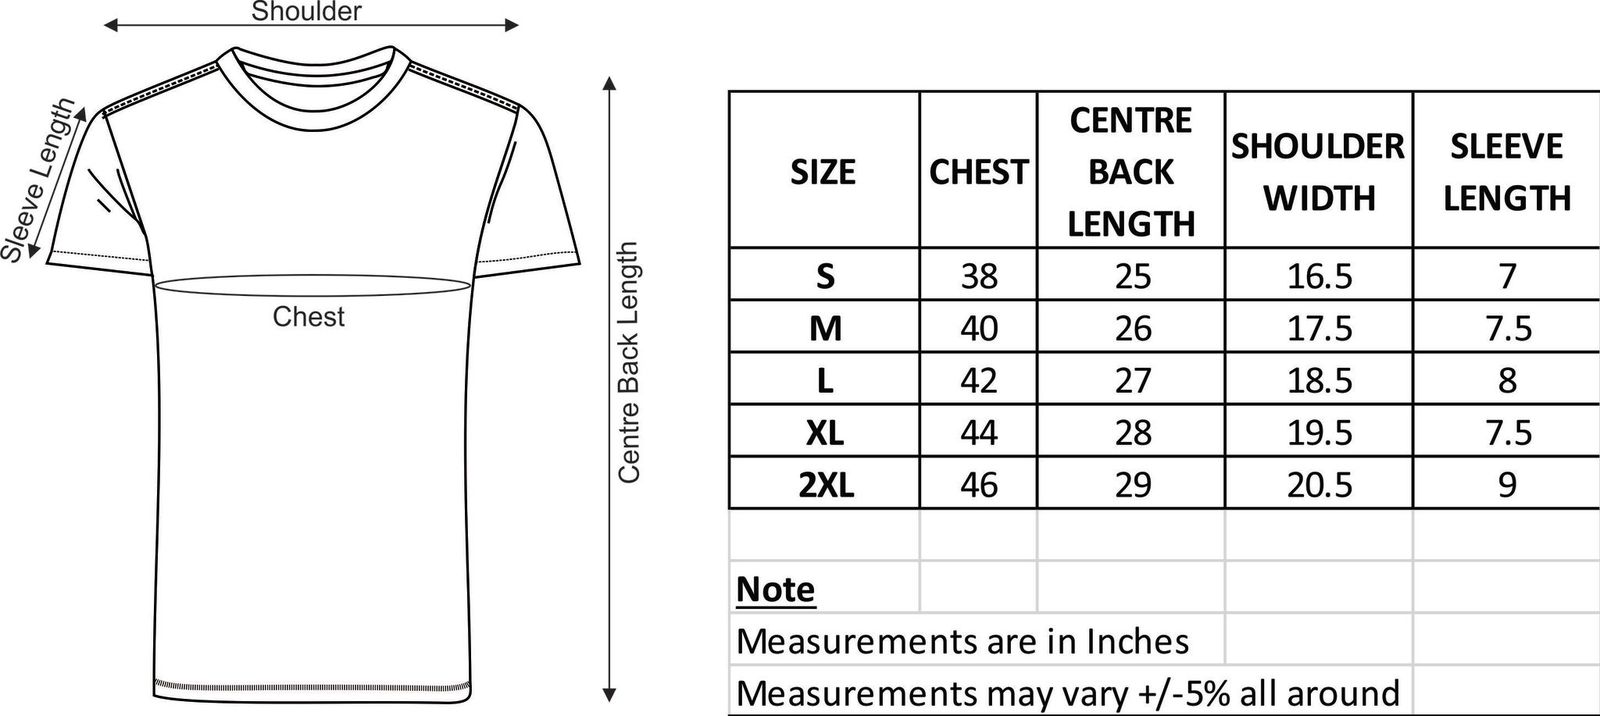 Krissxross Men's 100 % Cotton Premium Bio Washed Grey DTG Graphic Printed T-Shirt - (The Roadster)